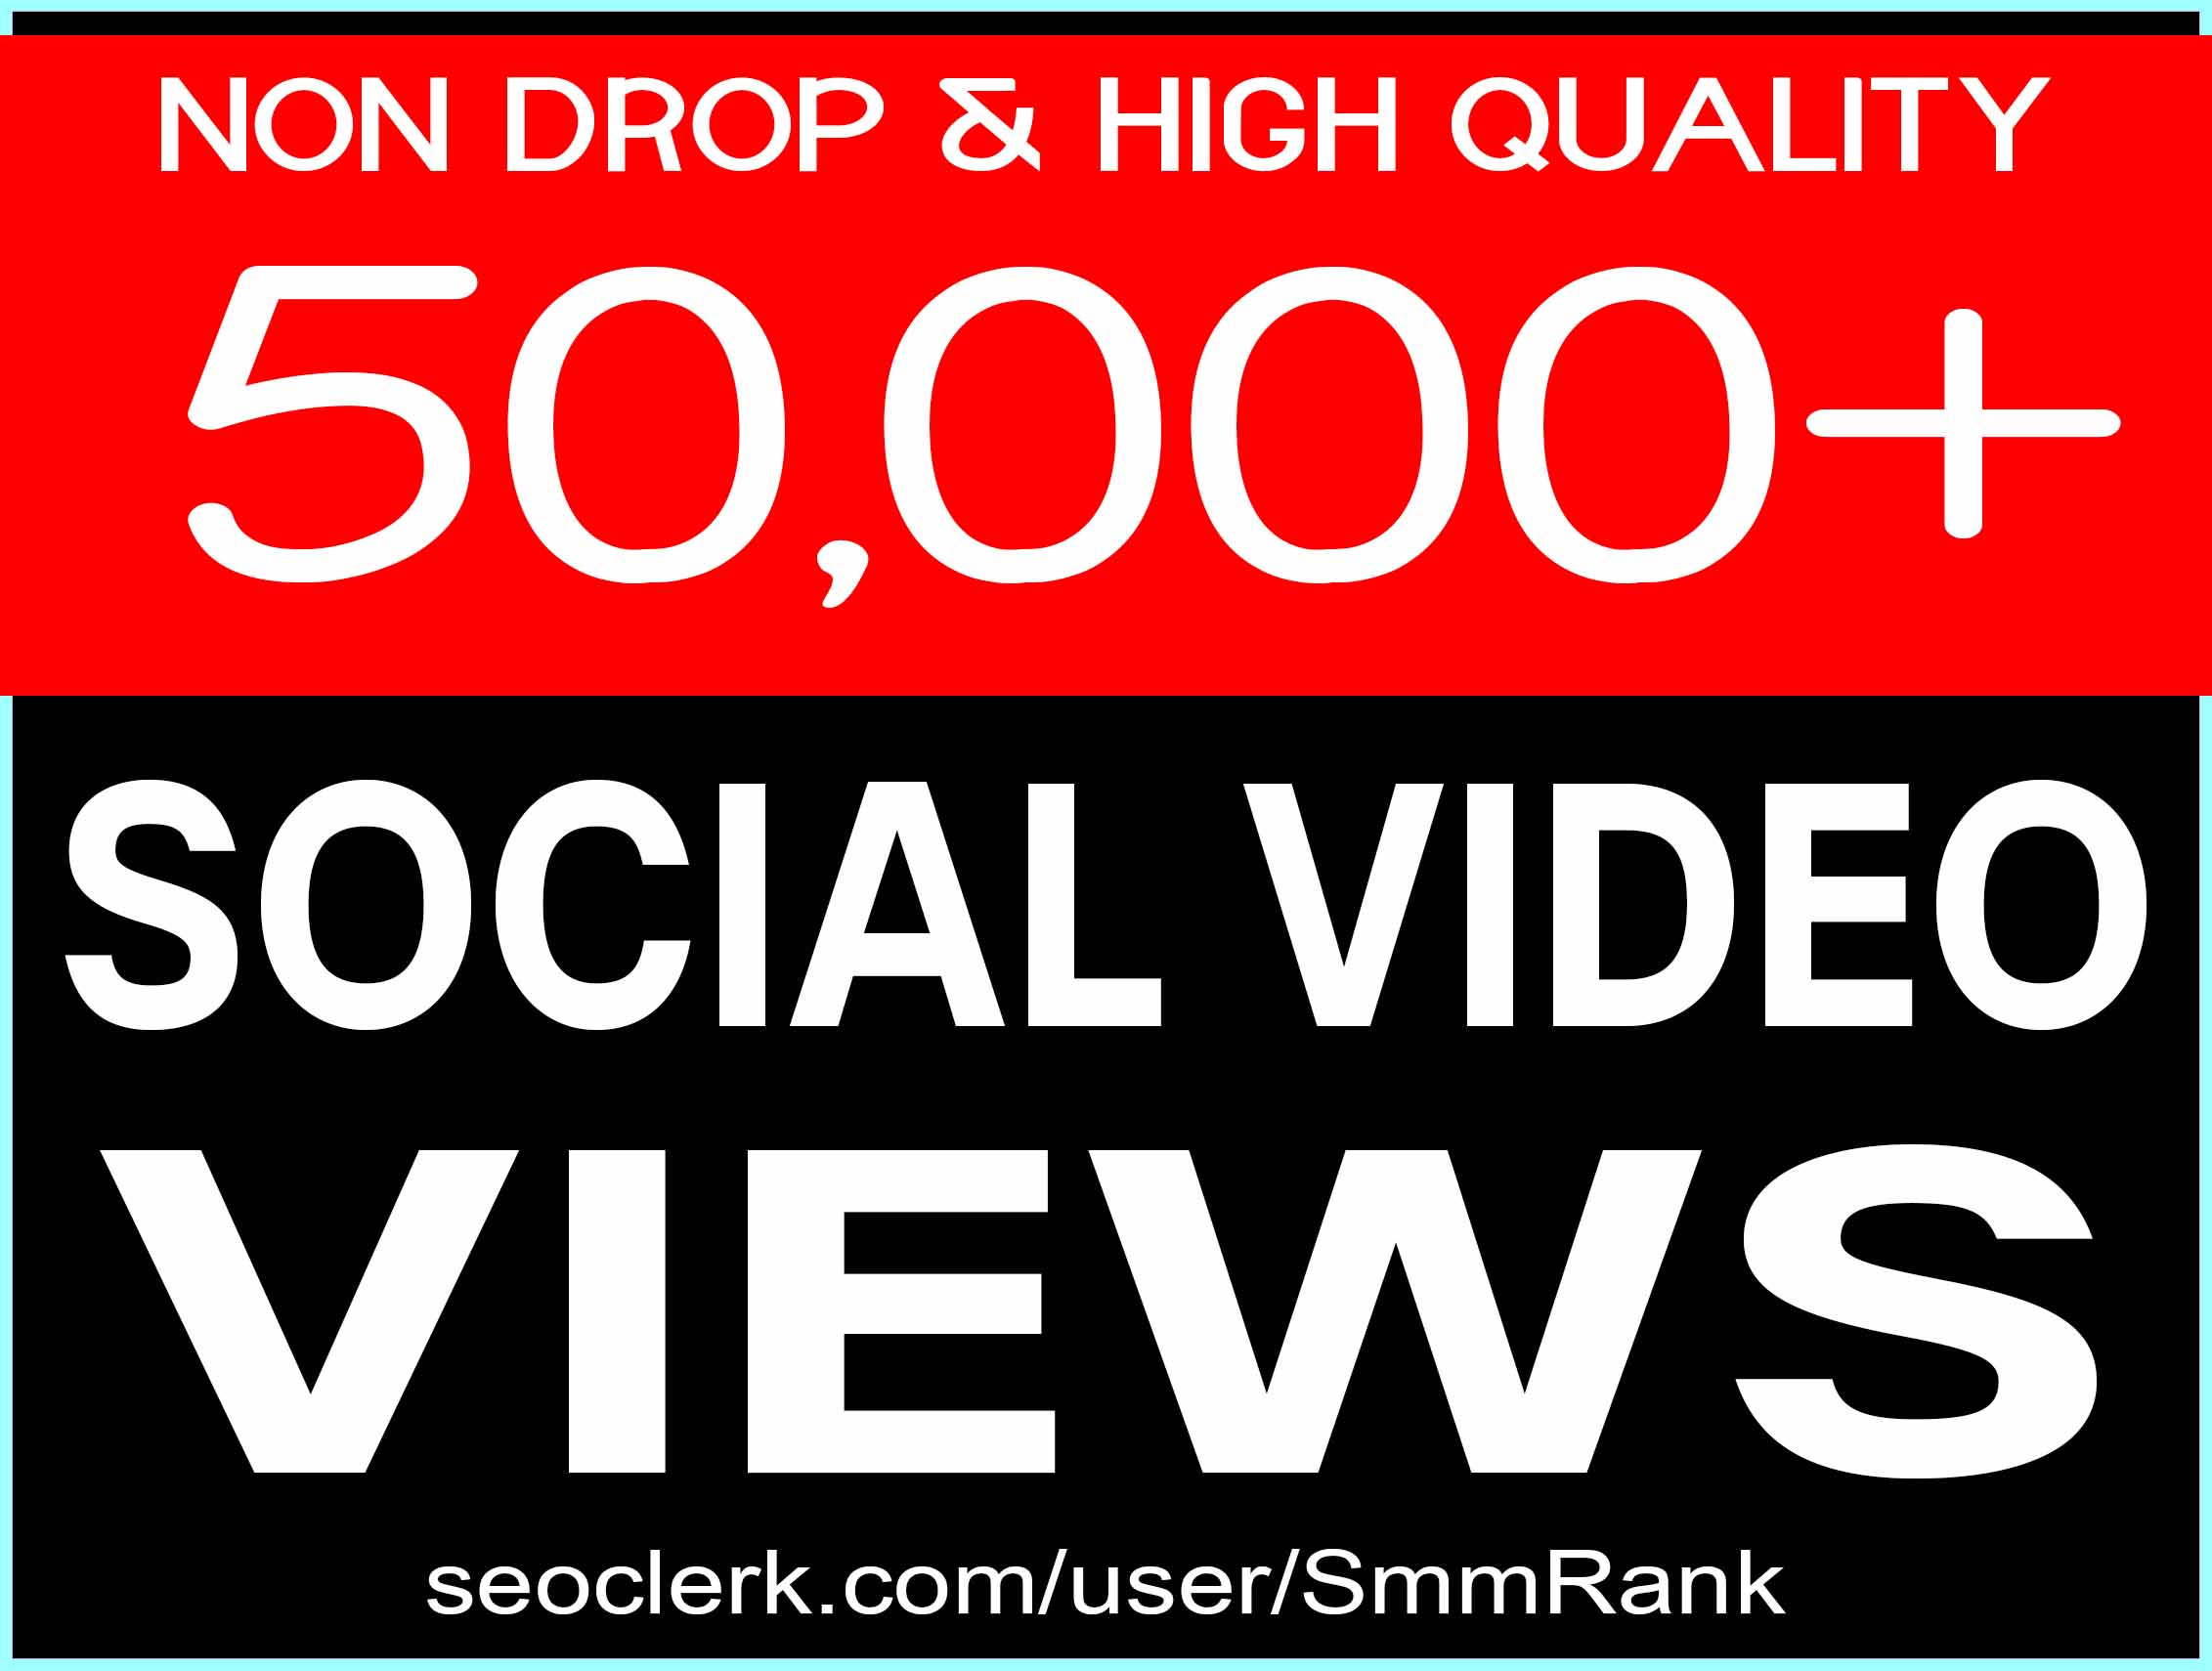 50,000+ SOCIAL VIDEO VIEWS SUPER FAST AND HIGH QUALITY WITH NON DROP GUARANTEED